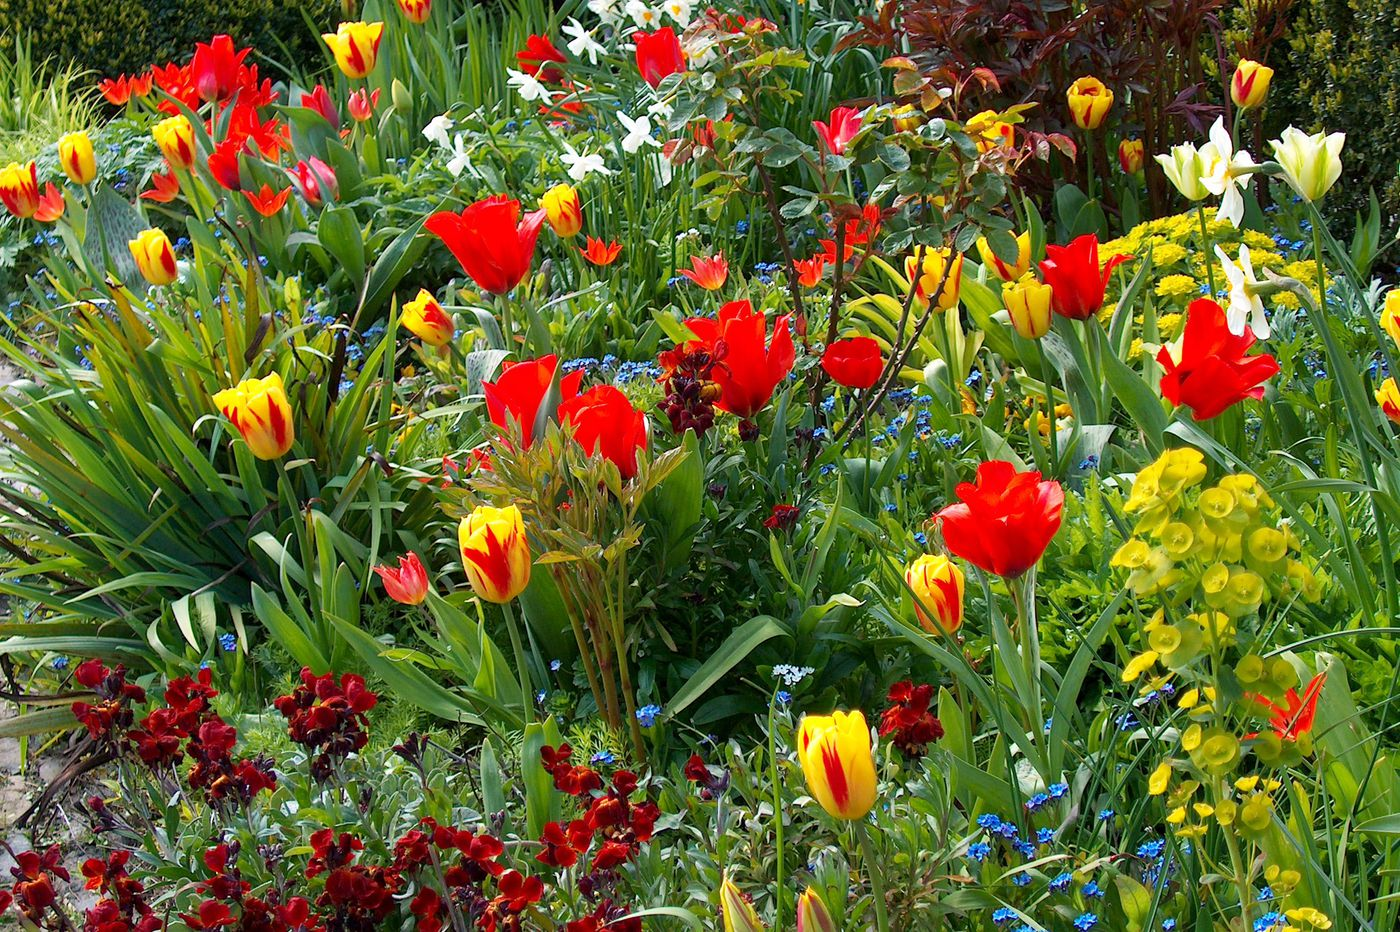 Planting bulbs offers us the glimmer of hope that we all need